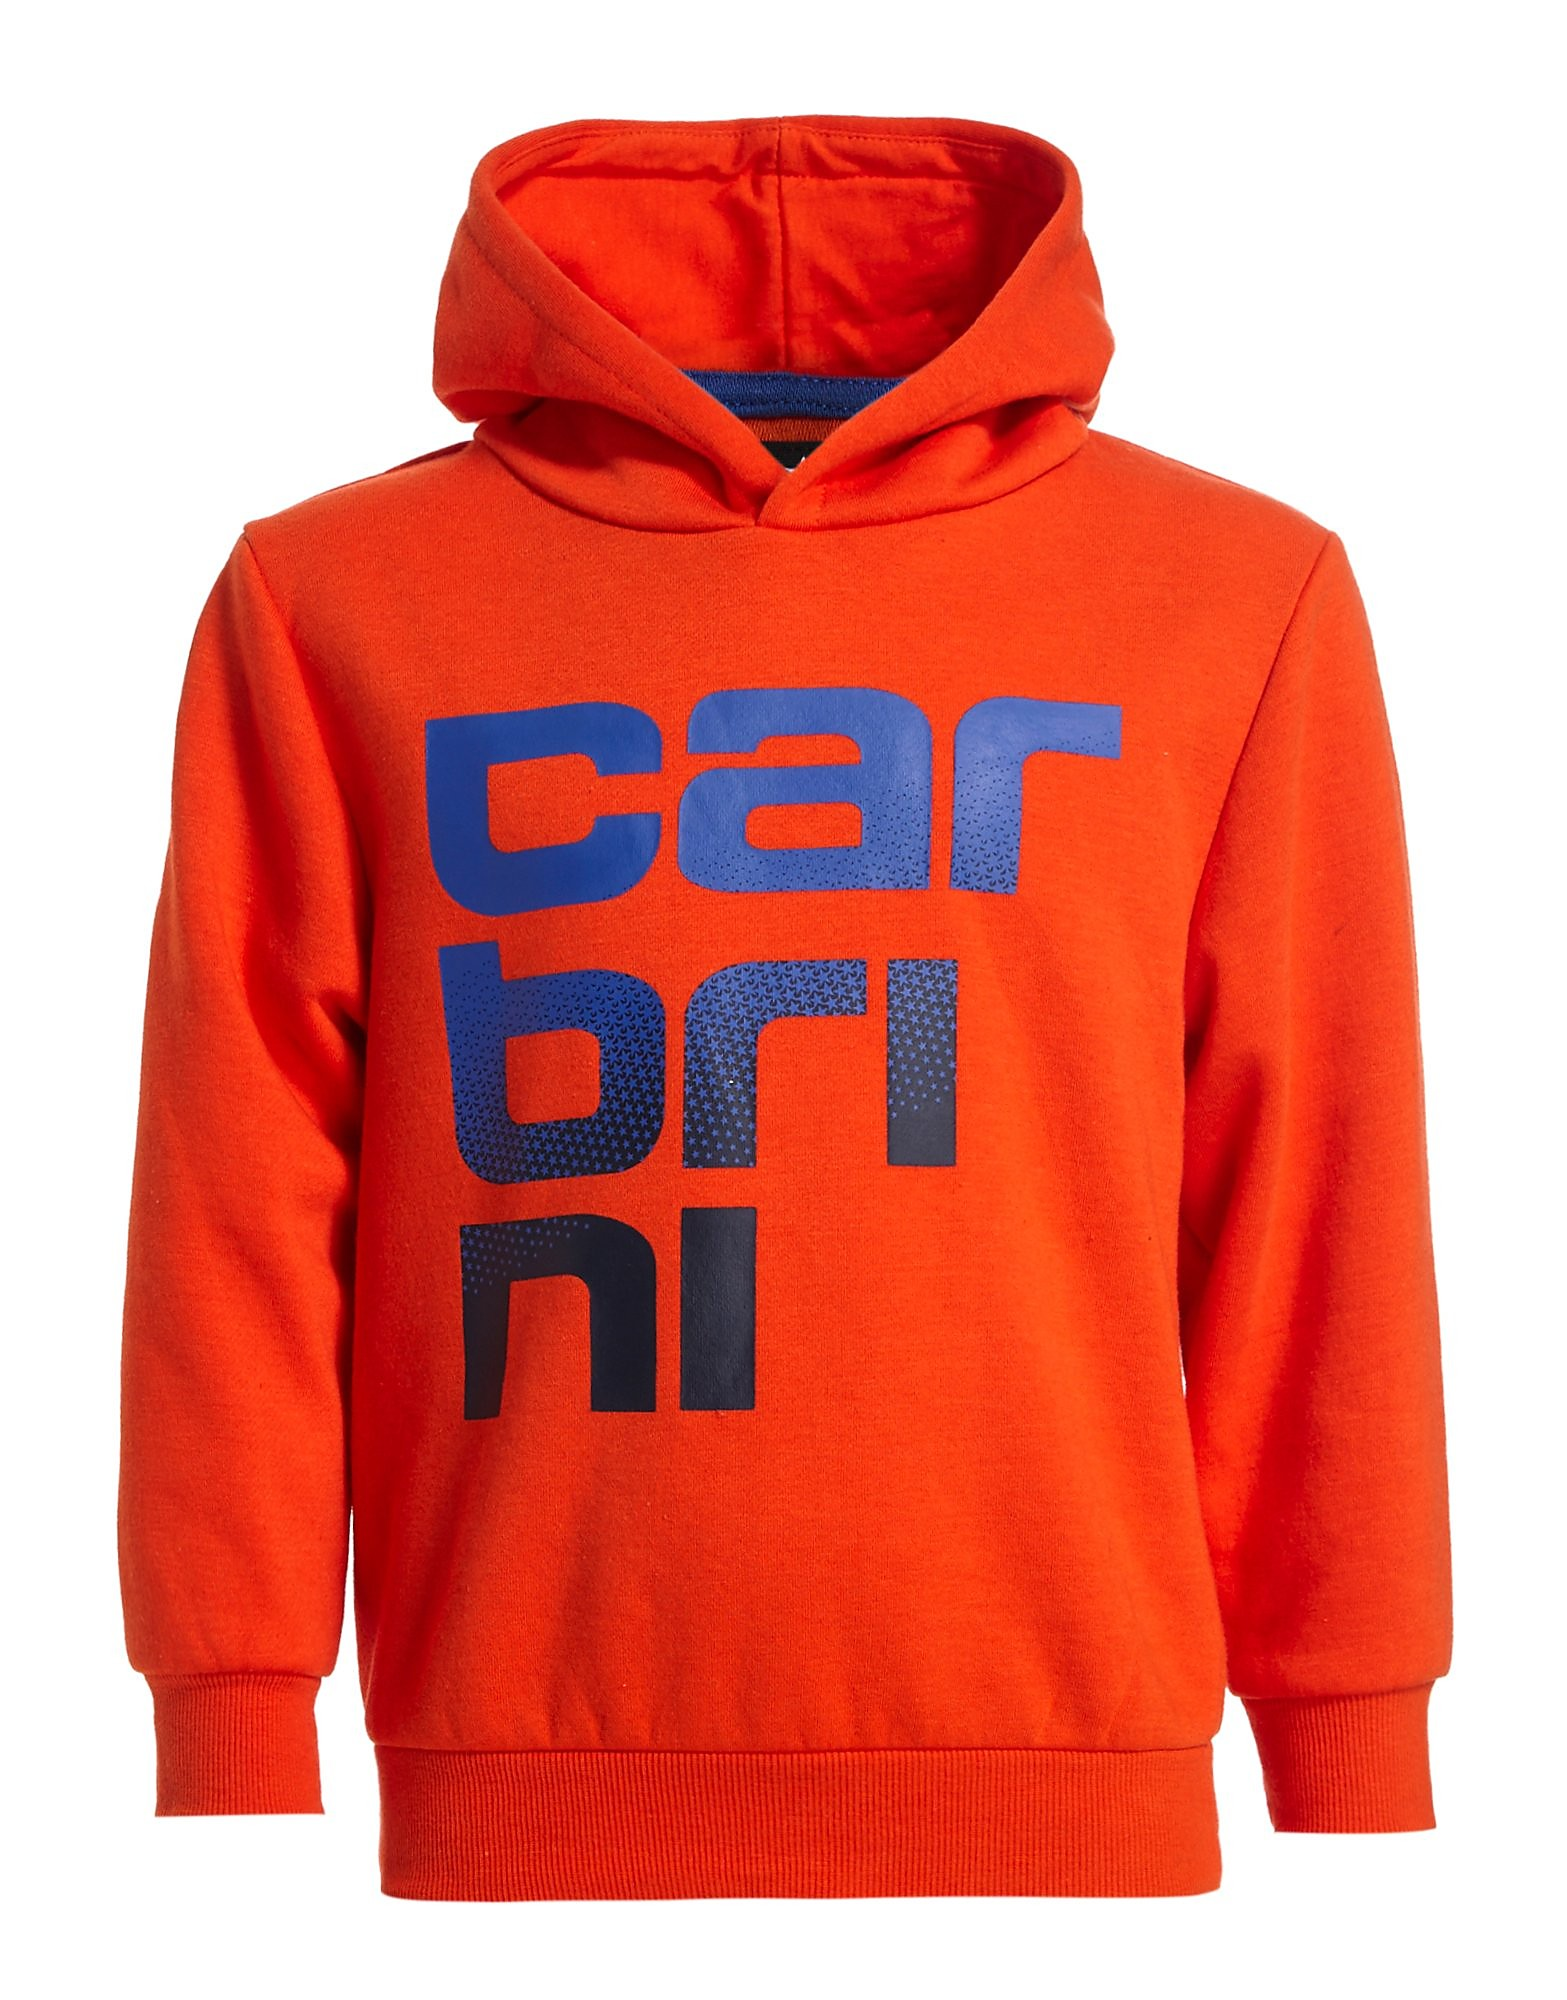 Carbrini Rocket Print Hoody Children